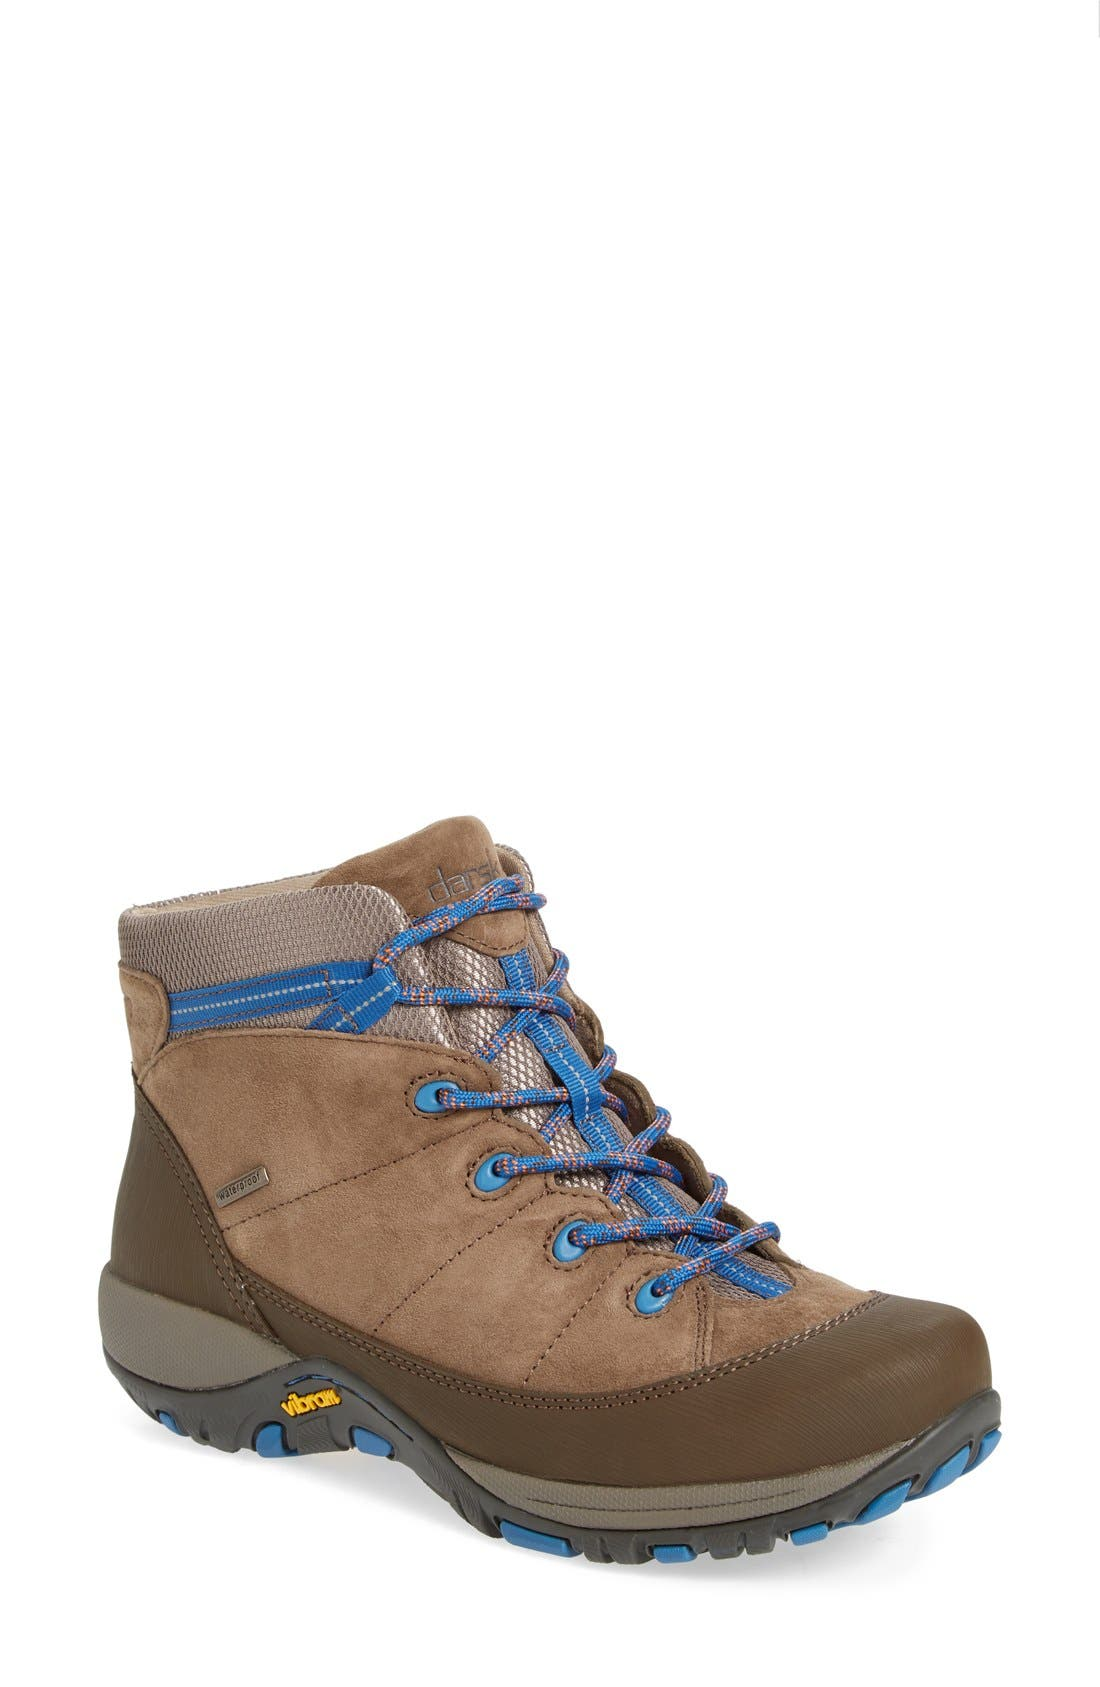 'Paulette' Waterproof Hiking Boot,                             Main thumbnail 1, color,                             Taupe Suede